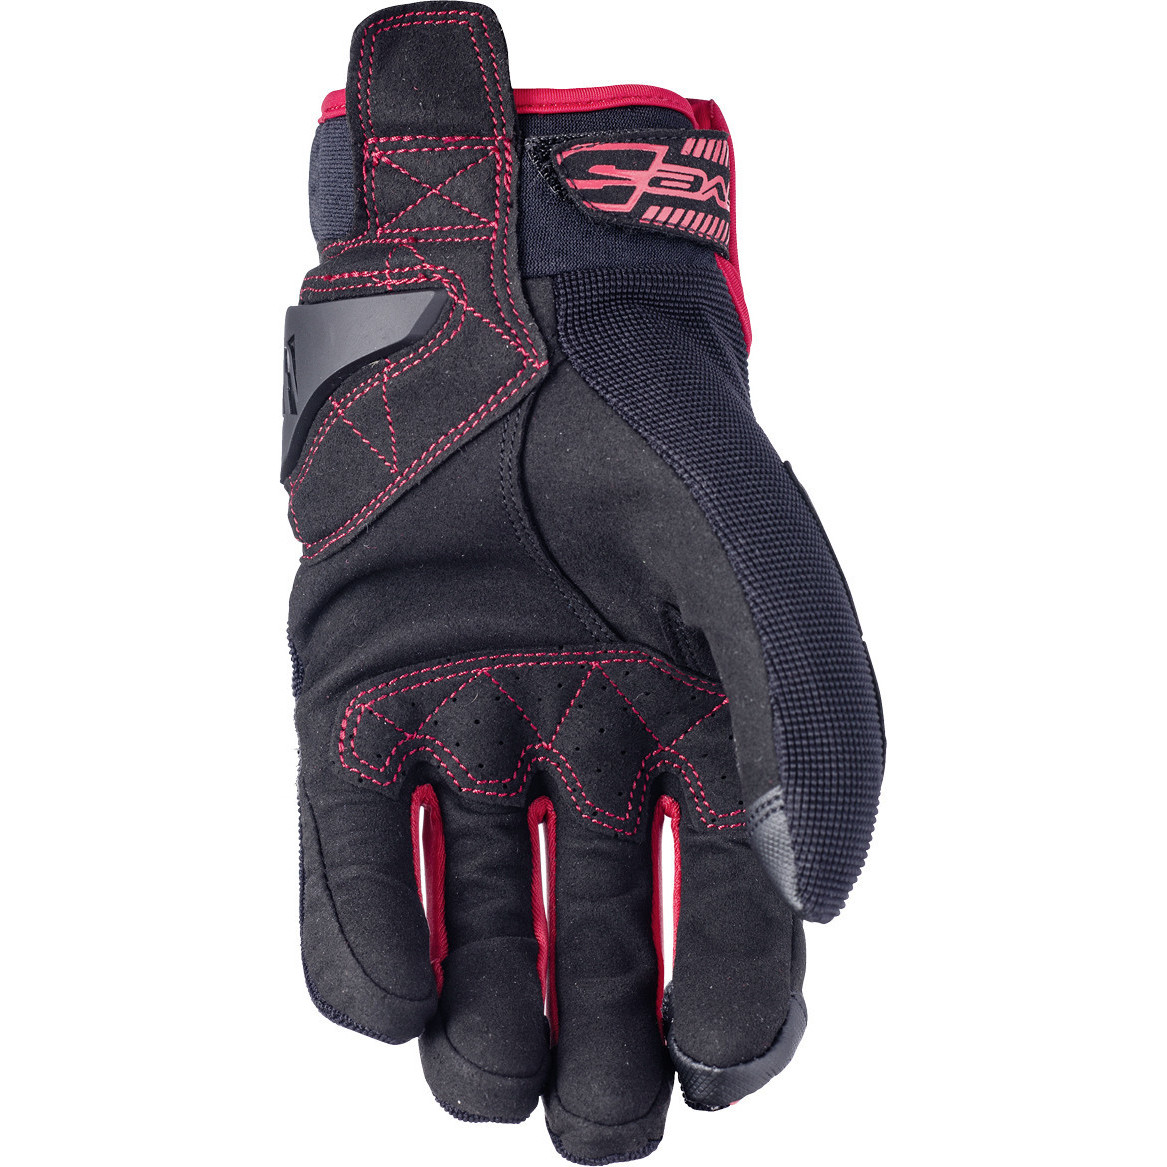 Five-RS3-Motorcycle-Gloves-Motorbike-Bike-Armour-Urban-Touch-Screen-GhostBikes thumbnail 11